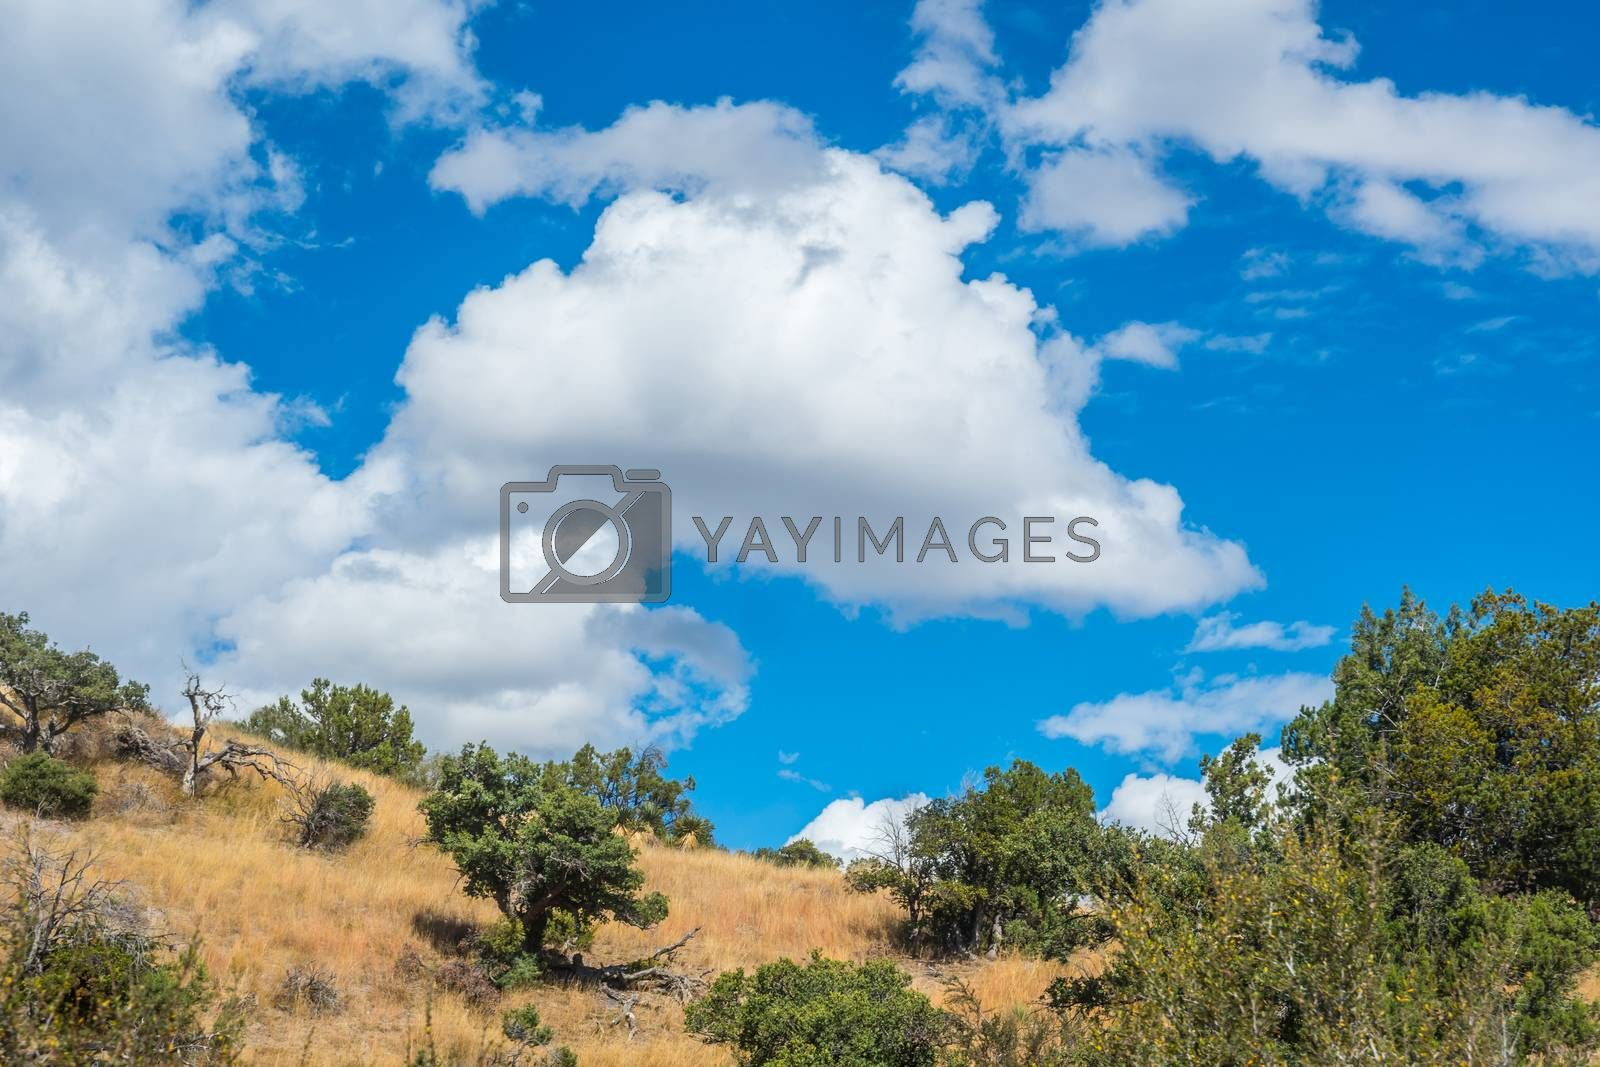 Epic landscape scenery while taking a stroll of the grassland